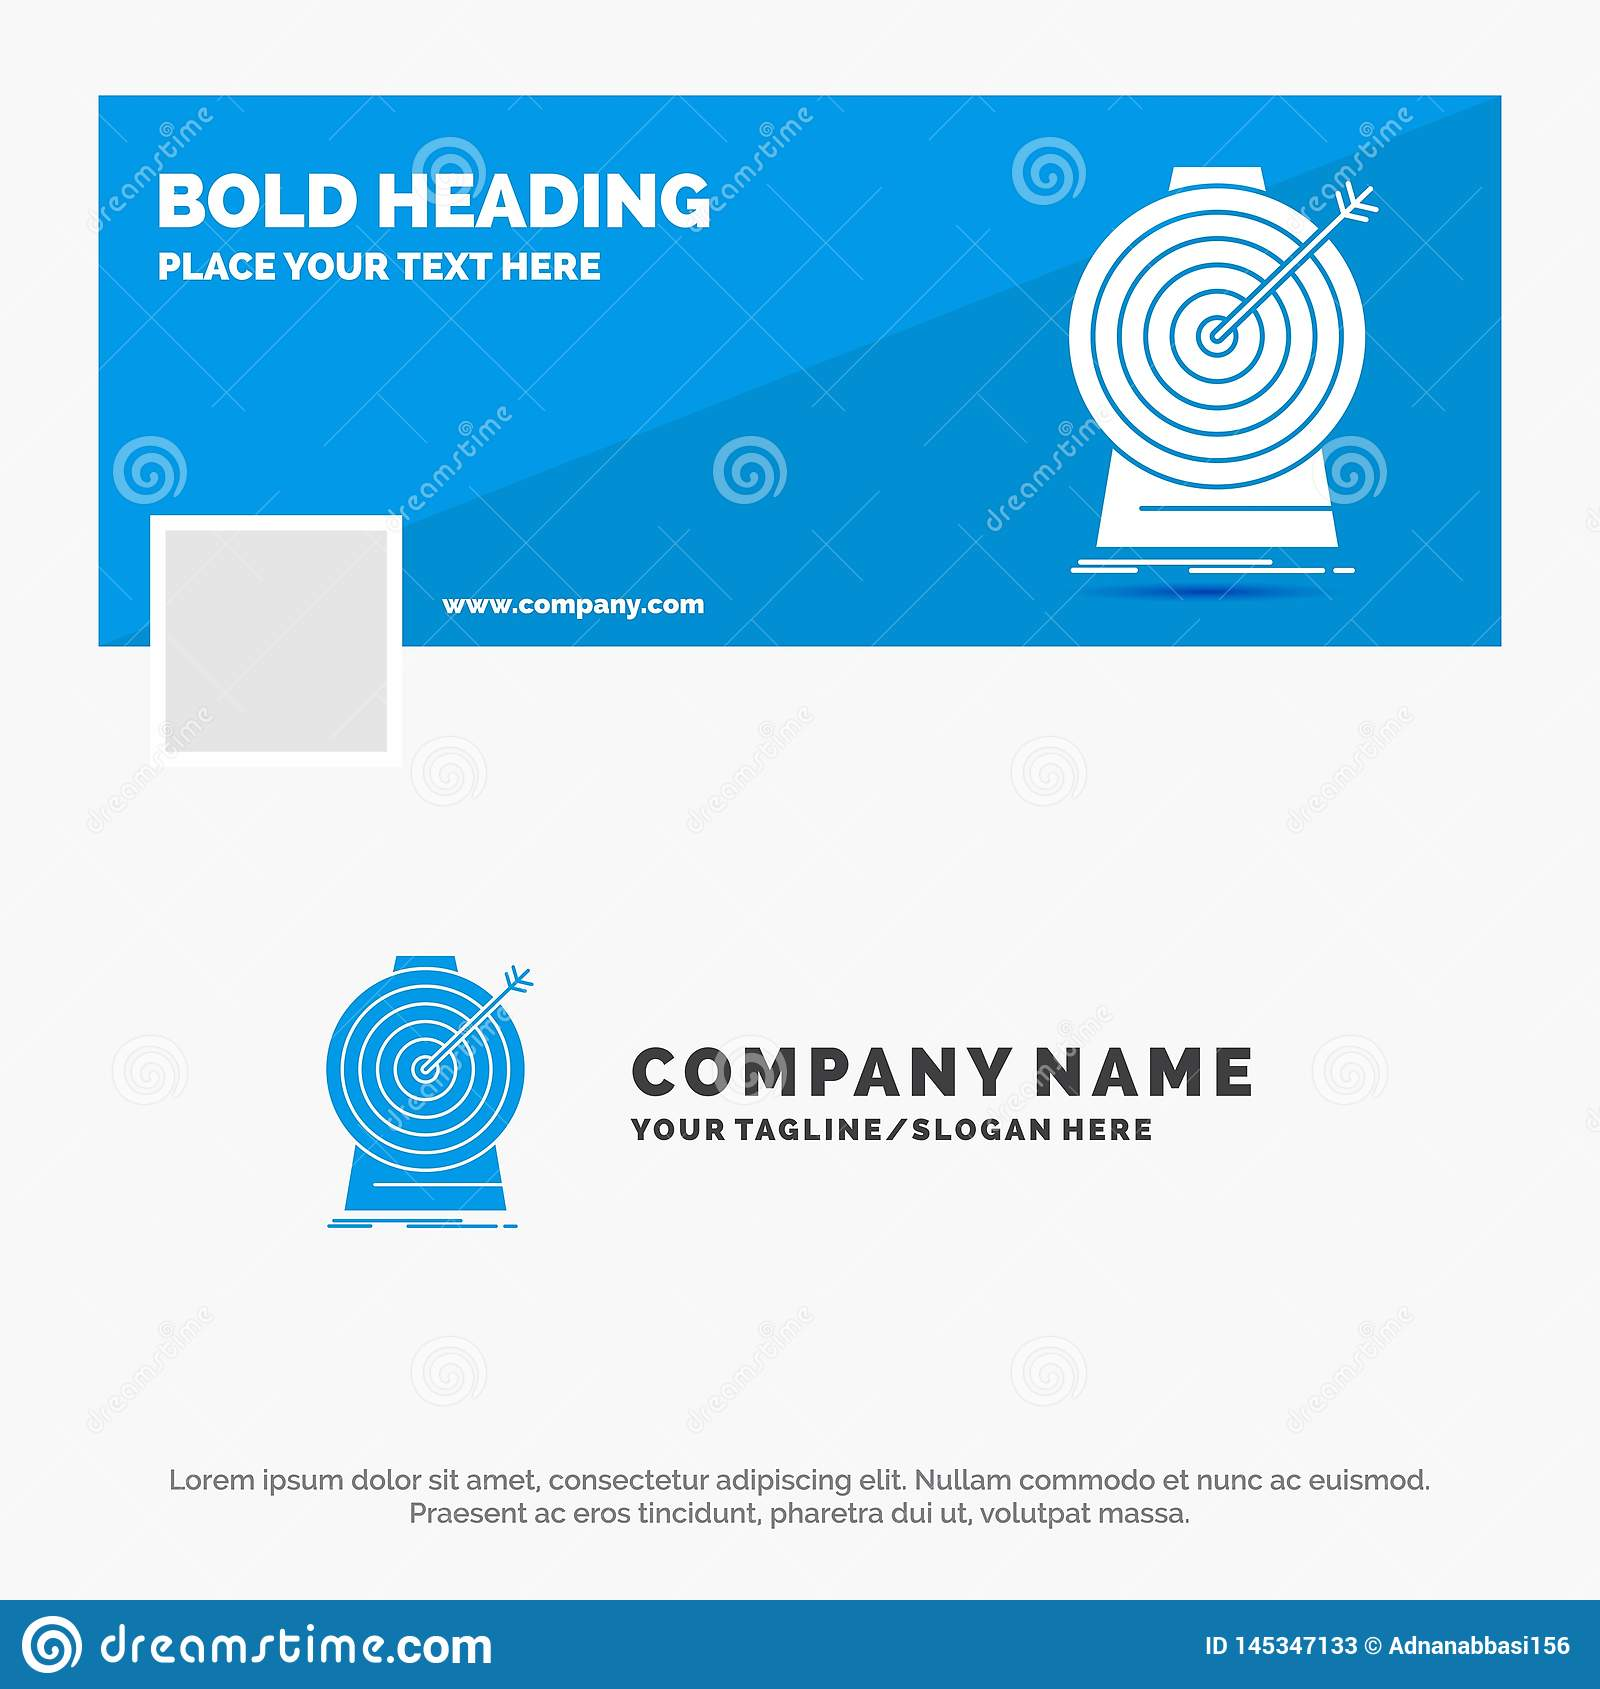 Blue Business Logo Template for Aim, focus, goal, target, targeting. Facebook Timeline Banner Design. vector web banner background